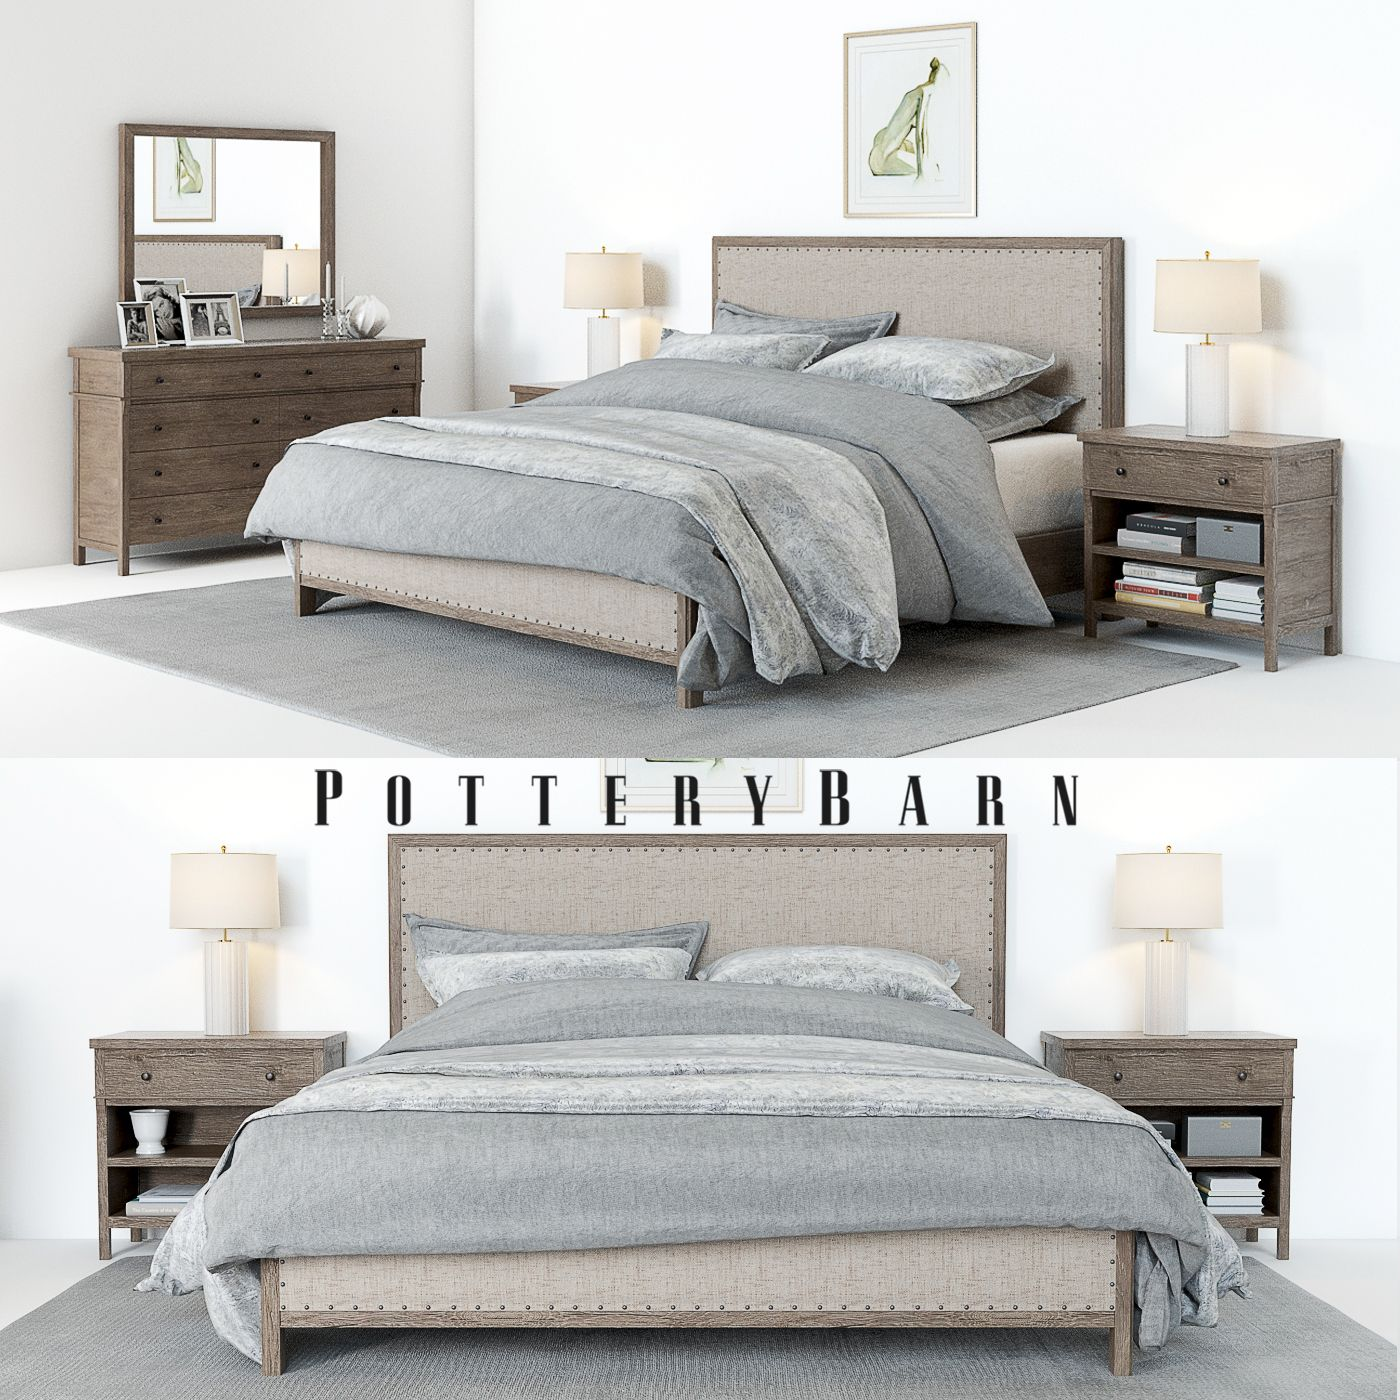 3D Model - Pottery Barn -Toulouse Bedroomset with bedside tables ...